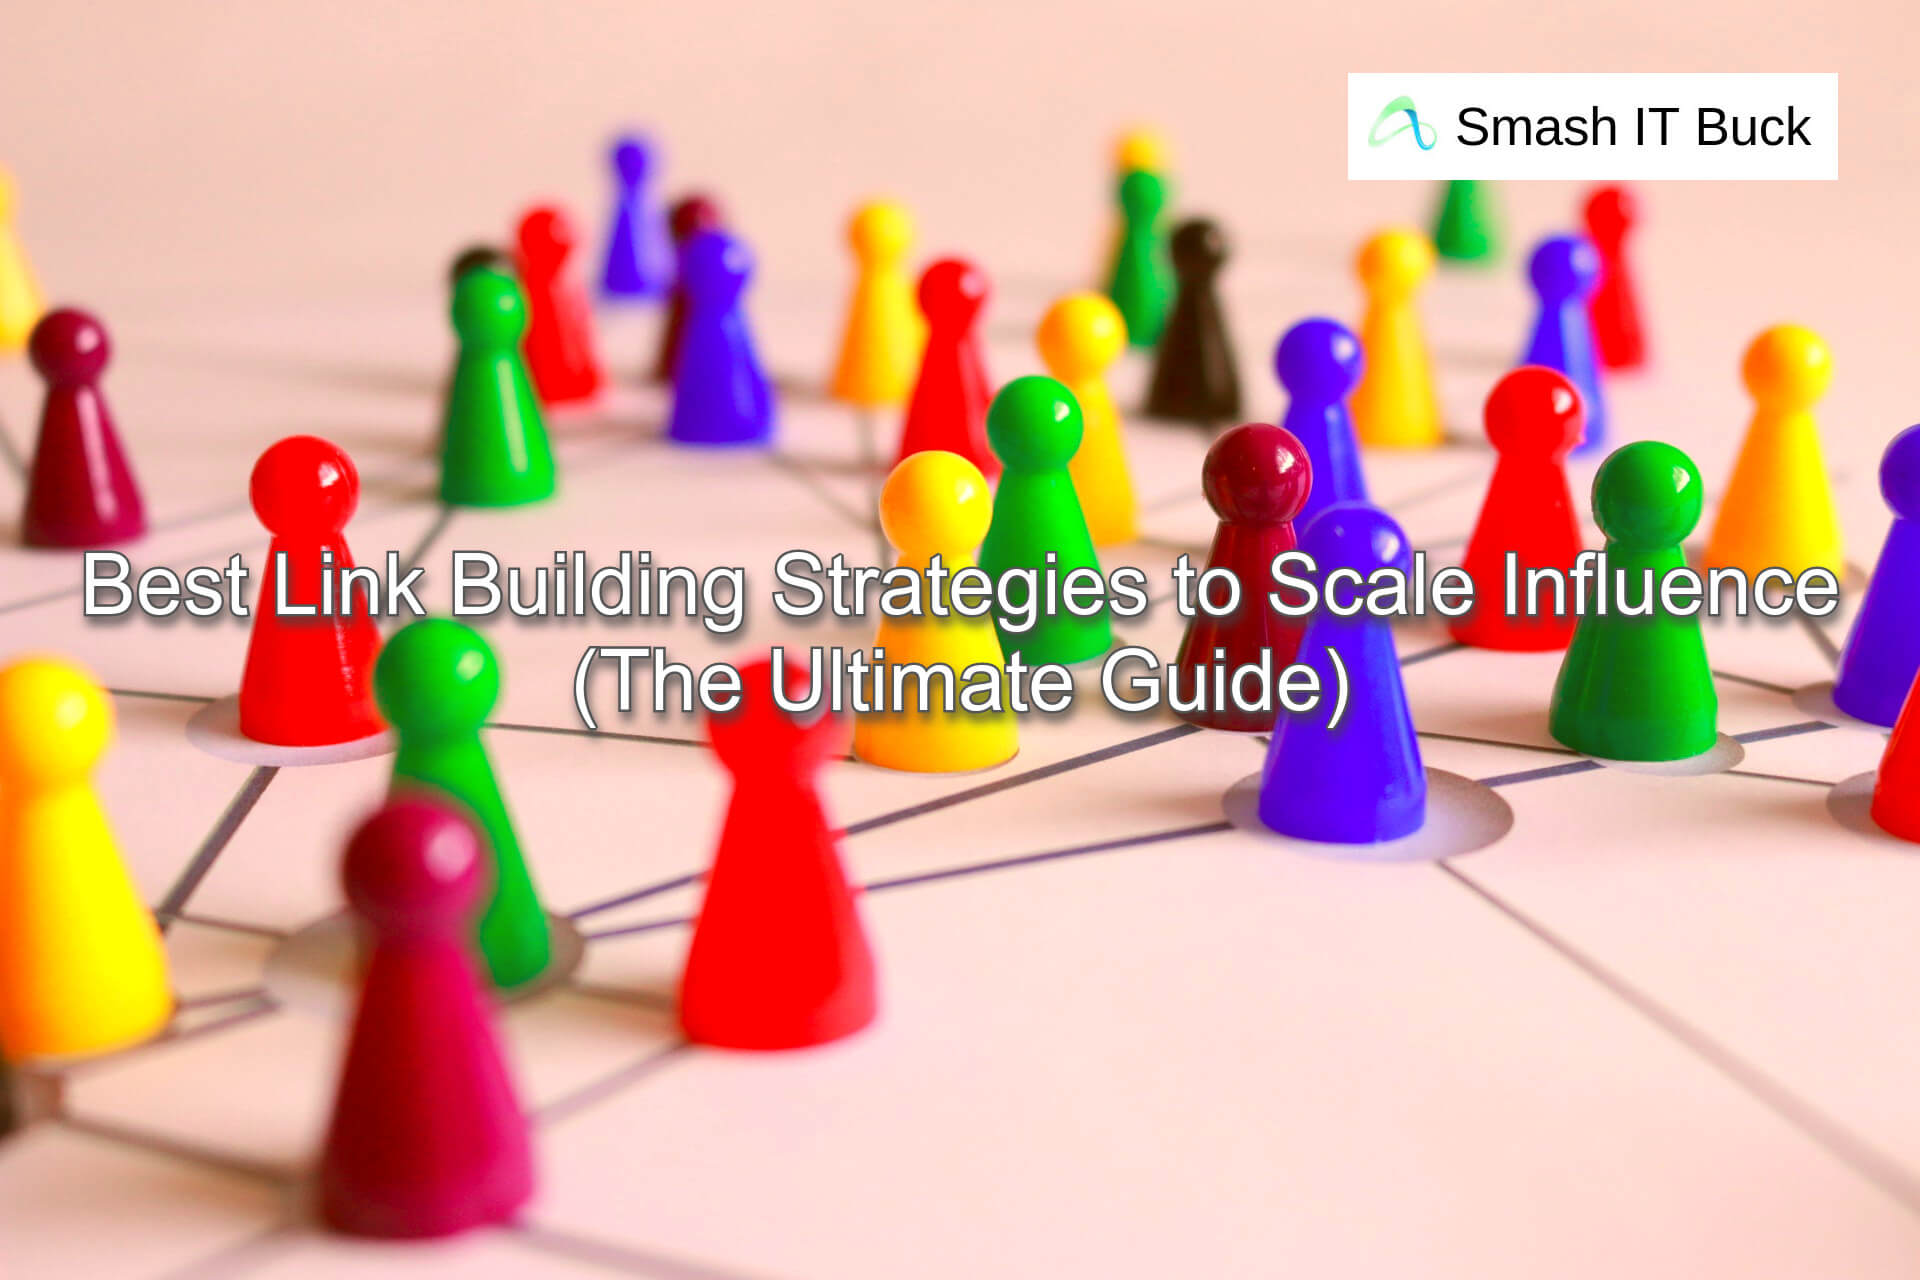 Best Link Building Strategies to use in 2021